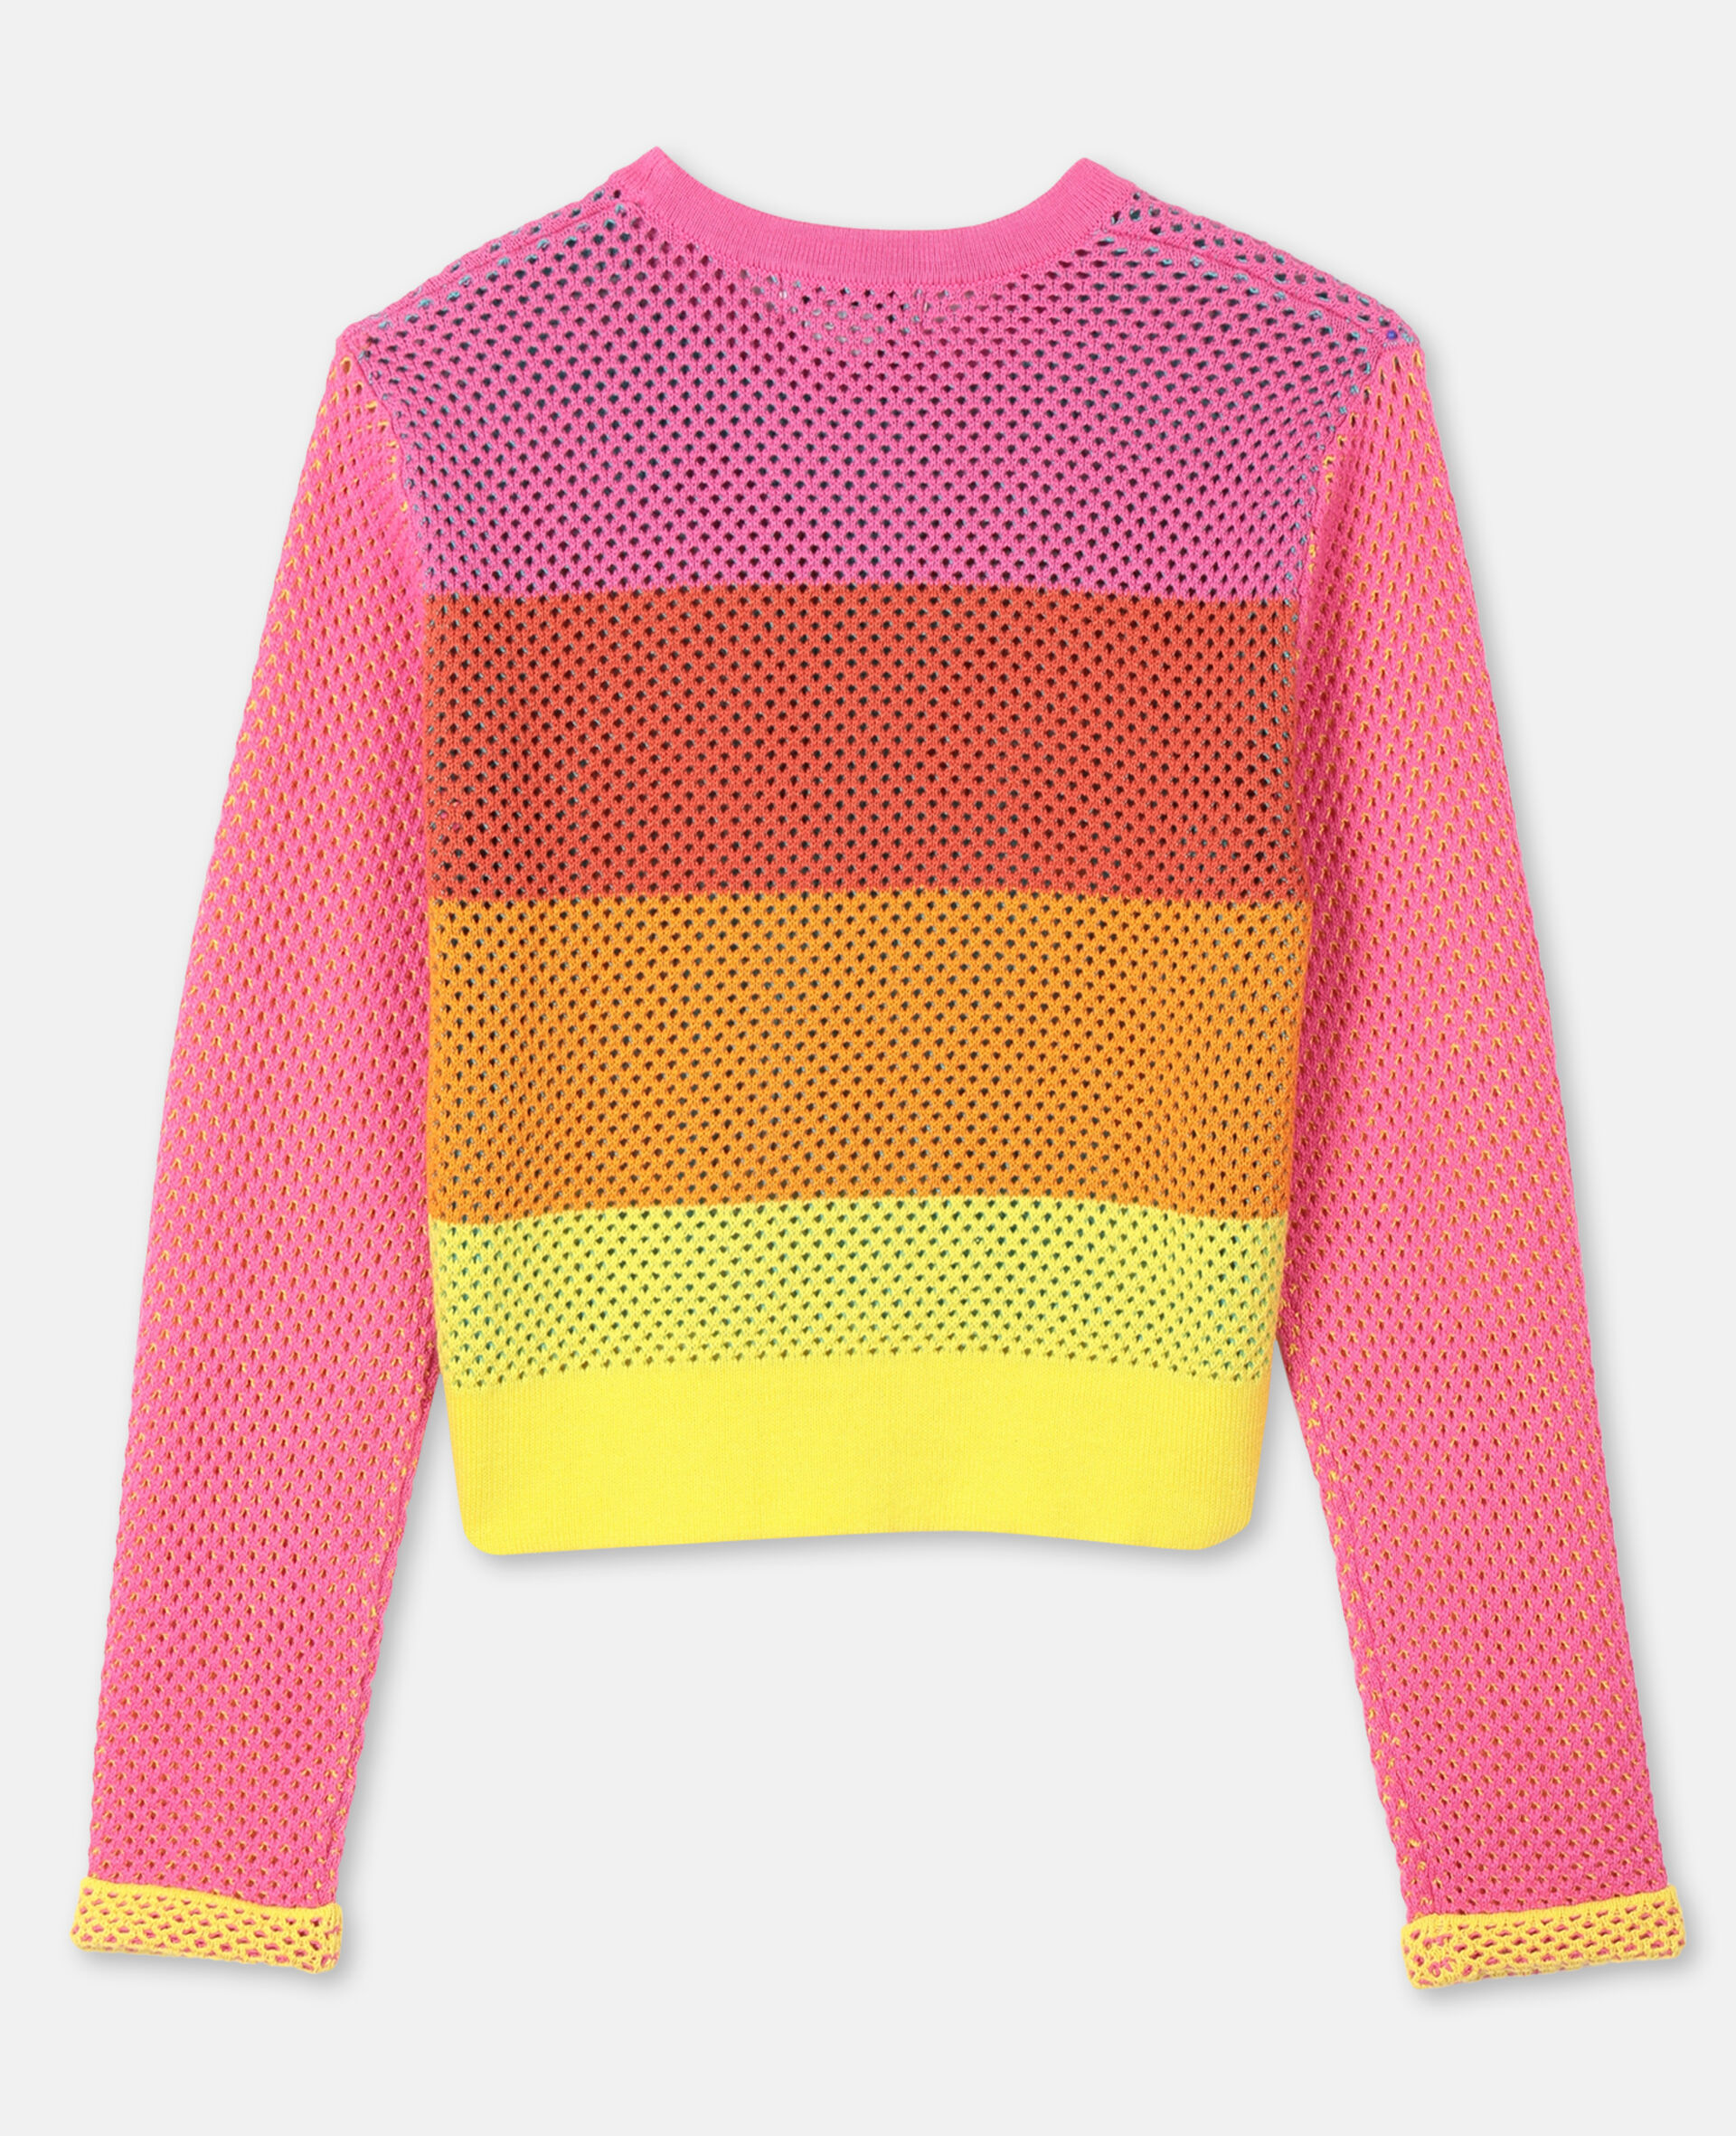 Intarsia Mesh Knit Cotton Sweater -Multicolour-large image number 3